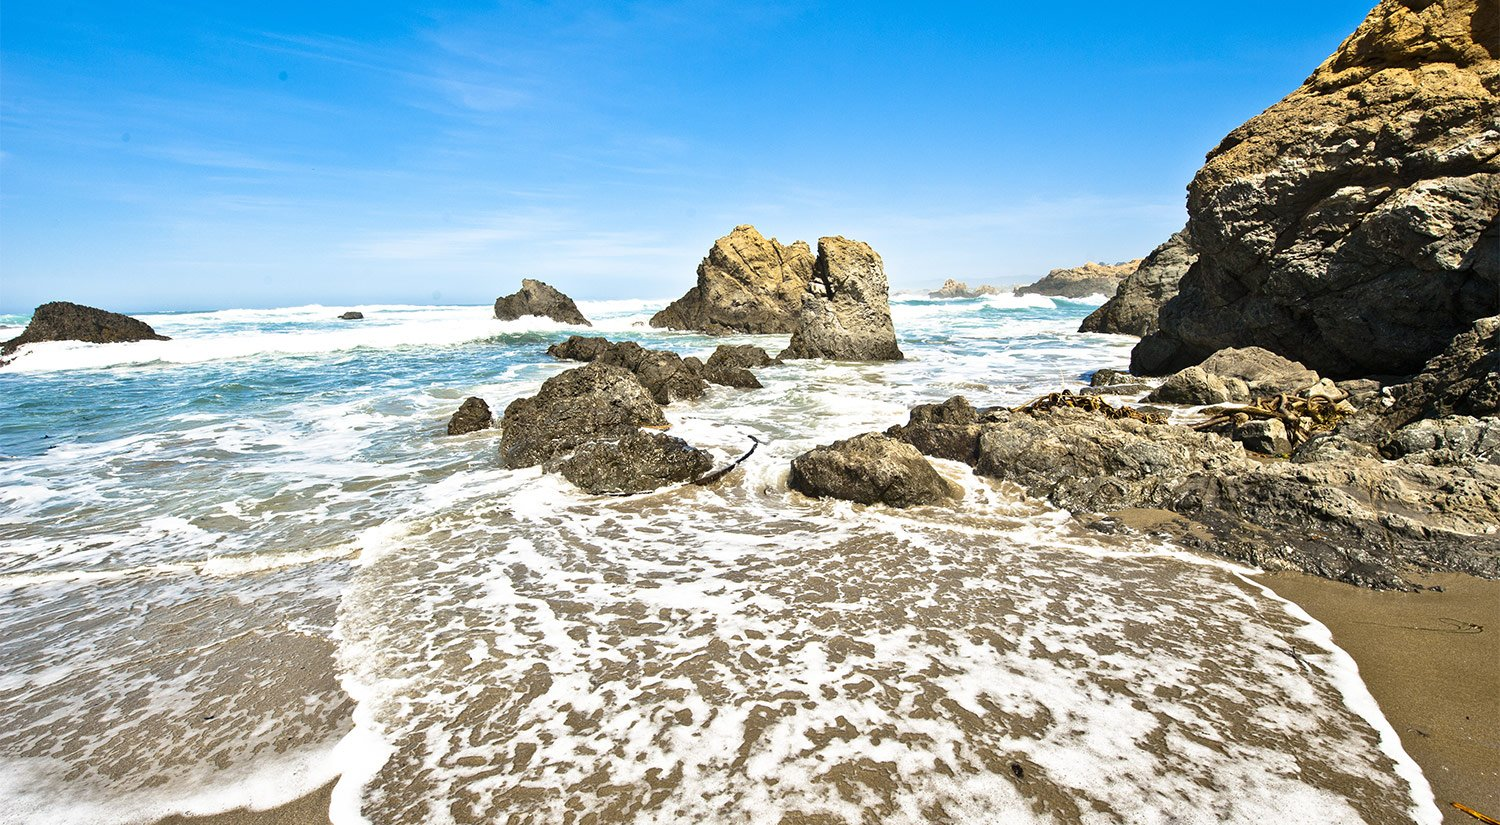 Explore The Beaches Of Mendocino and Fort Bragg